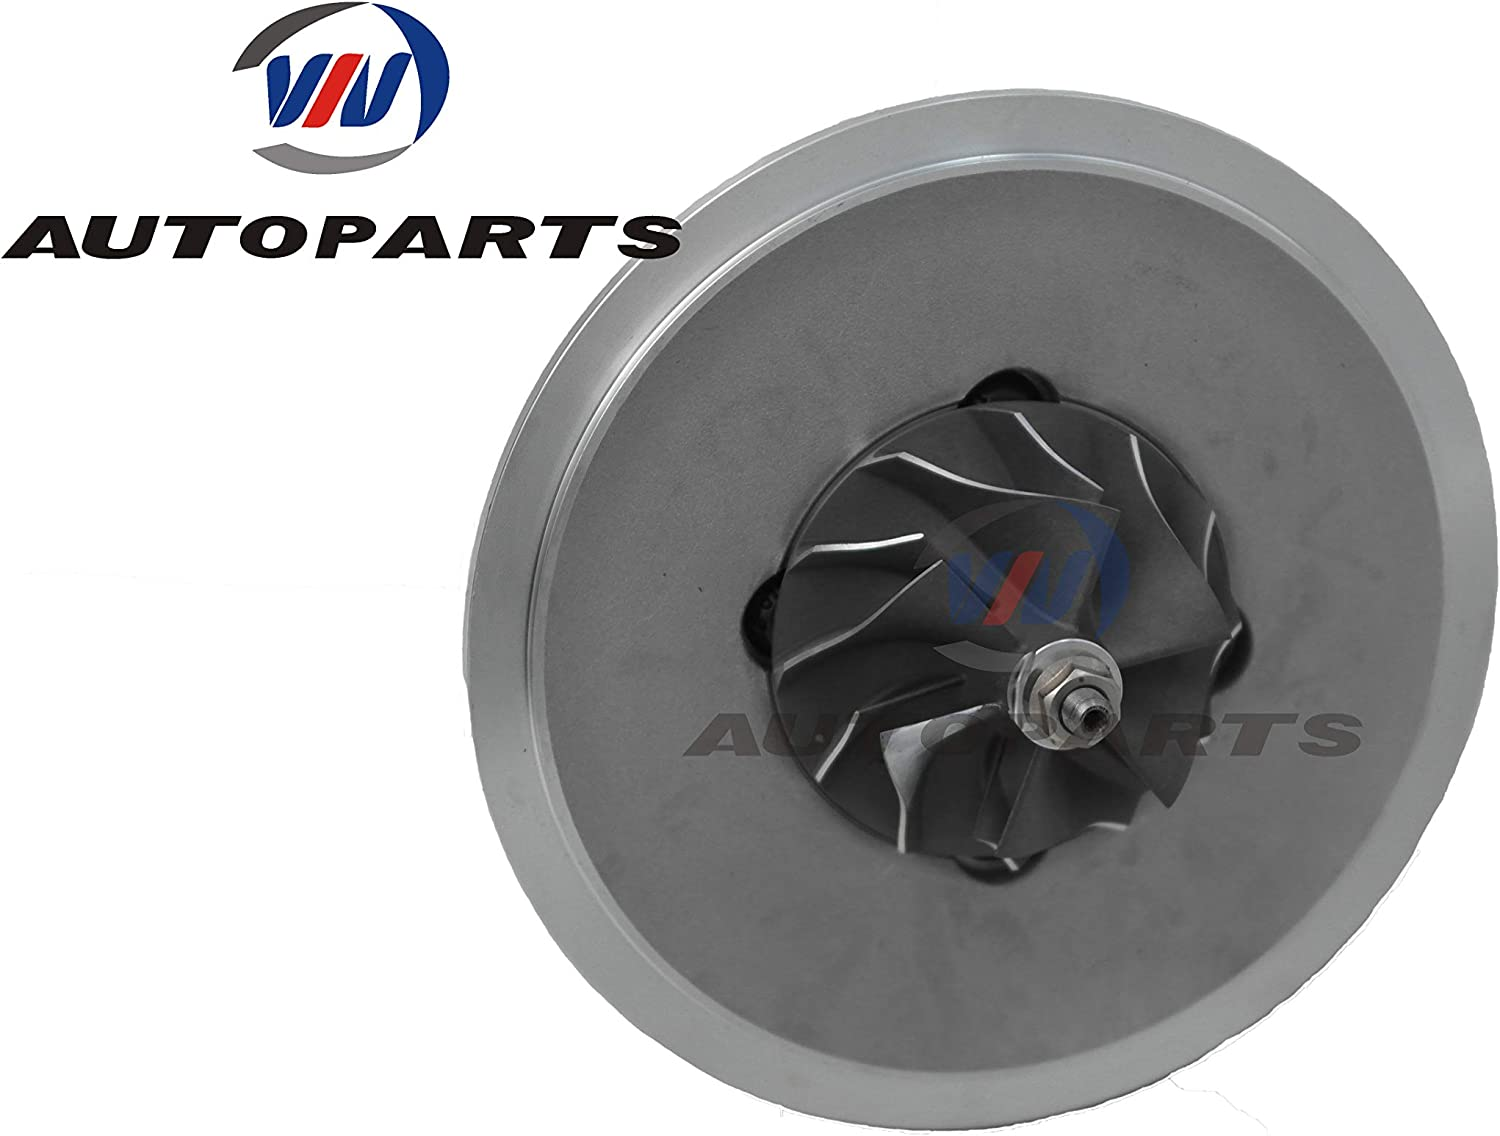 S4 A5 S5 2.0L CDNB,CAEA,CAEB A6 Turbo CHRA Cartridge 06H145702Q fit to 53039880291 for VW//Audi//Seat A4